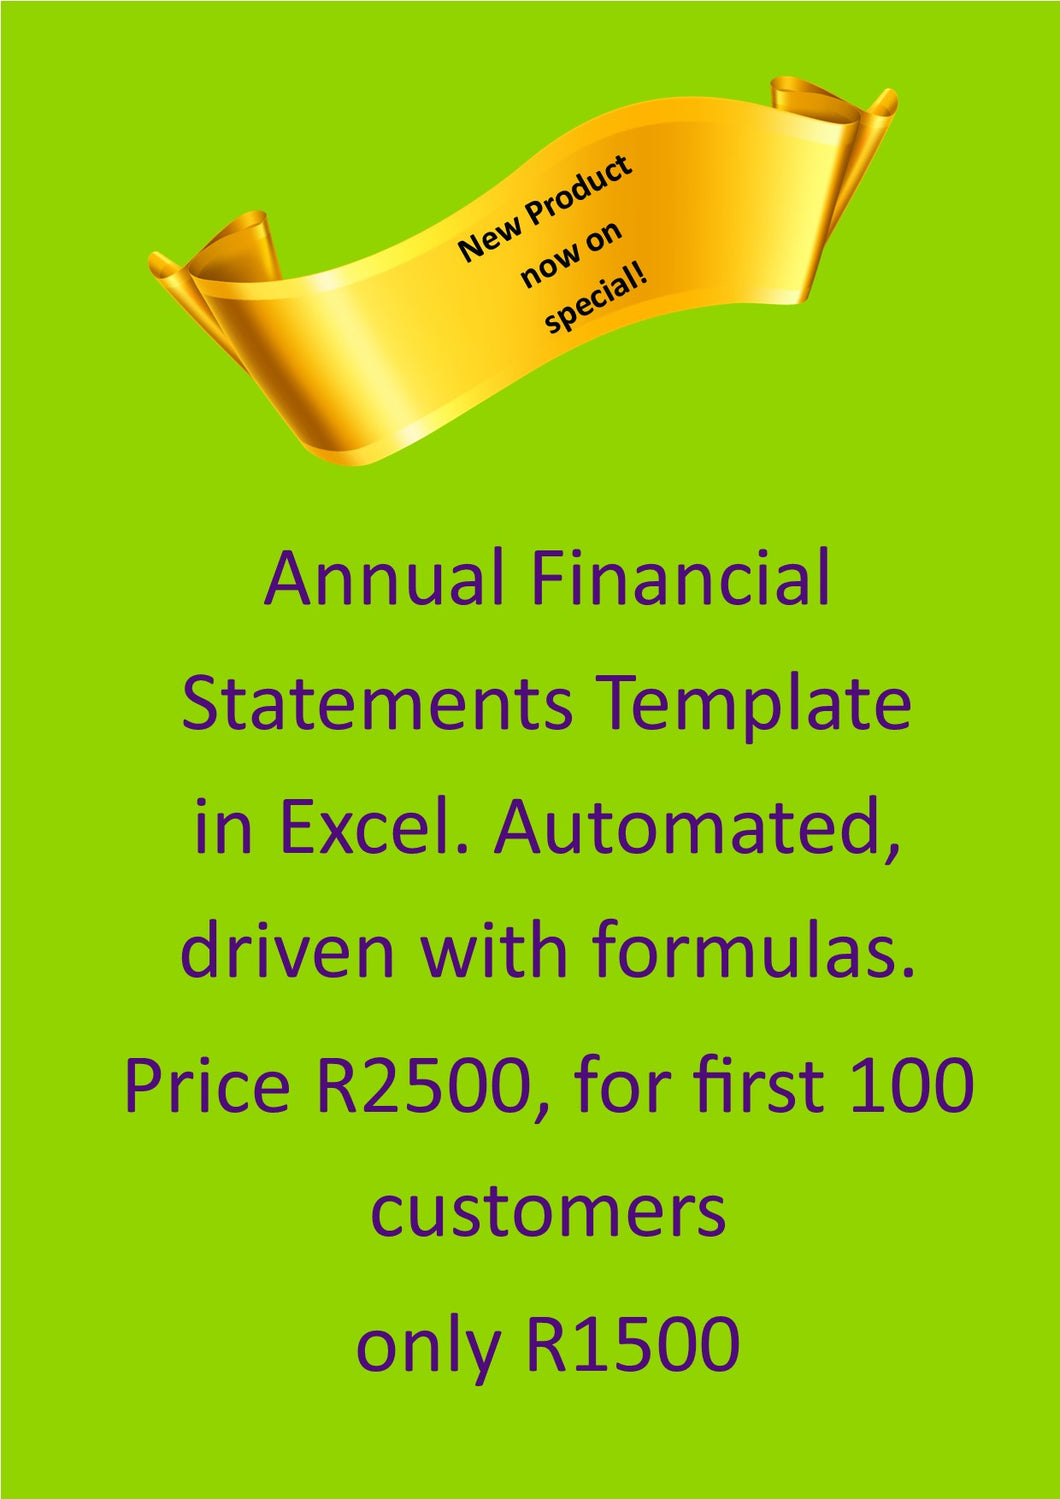 Annual Financial Statements (AFS) Automated with formulas in Excel (Download link and licence key will be emailed to you)